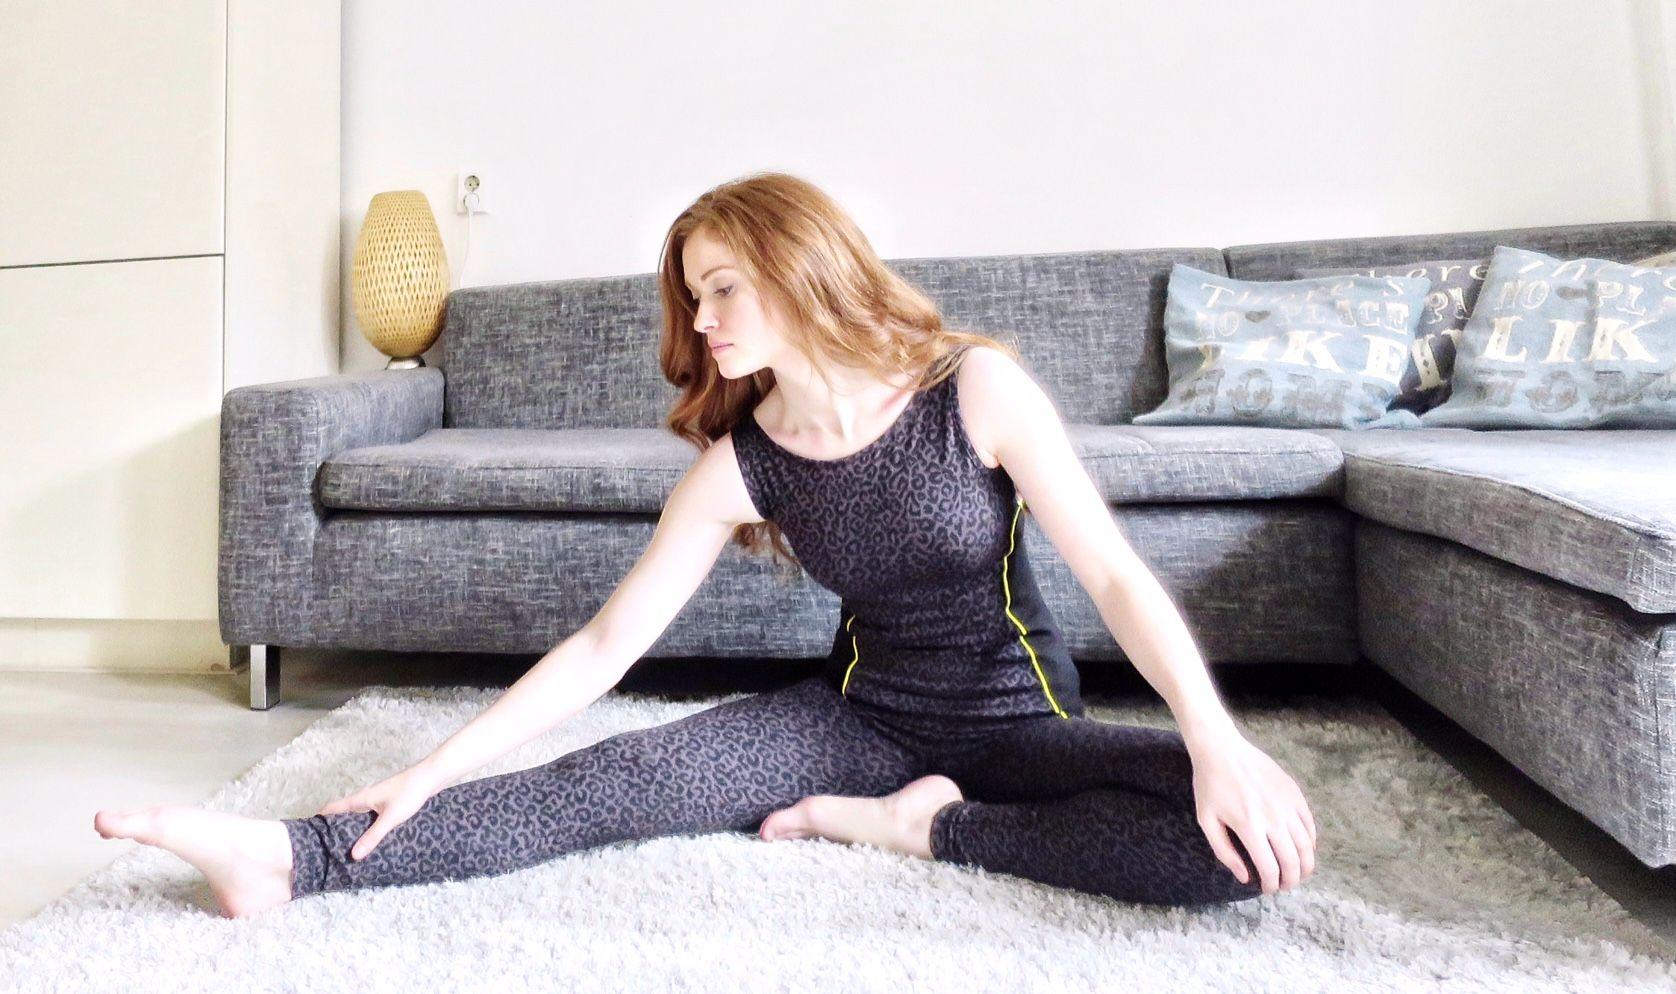 Asquith: The Luxury Activewear Brand From London Now Stocked At Infnti Amsterdam Helen Turner  https://helenturnerhealth.com/blog/asquith-the-luxury-activewear-brand-from-london-now-stocked-at-infnti-amsterdam